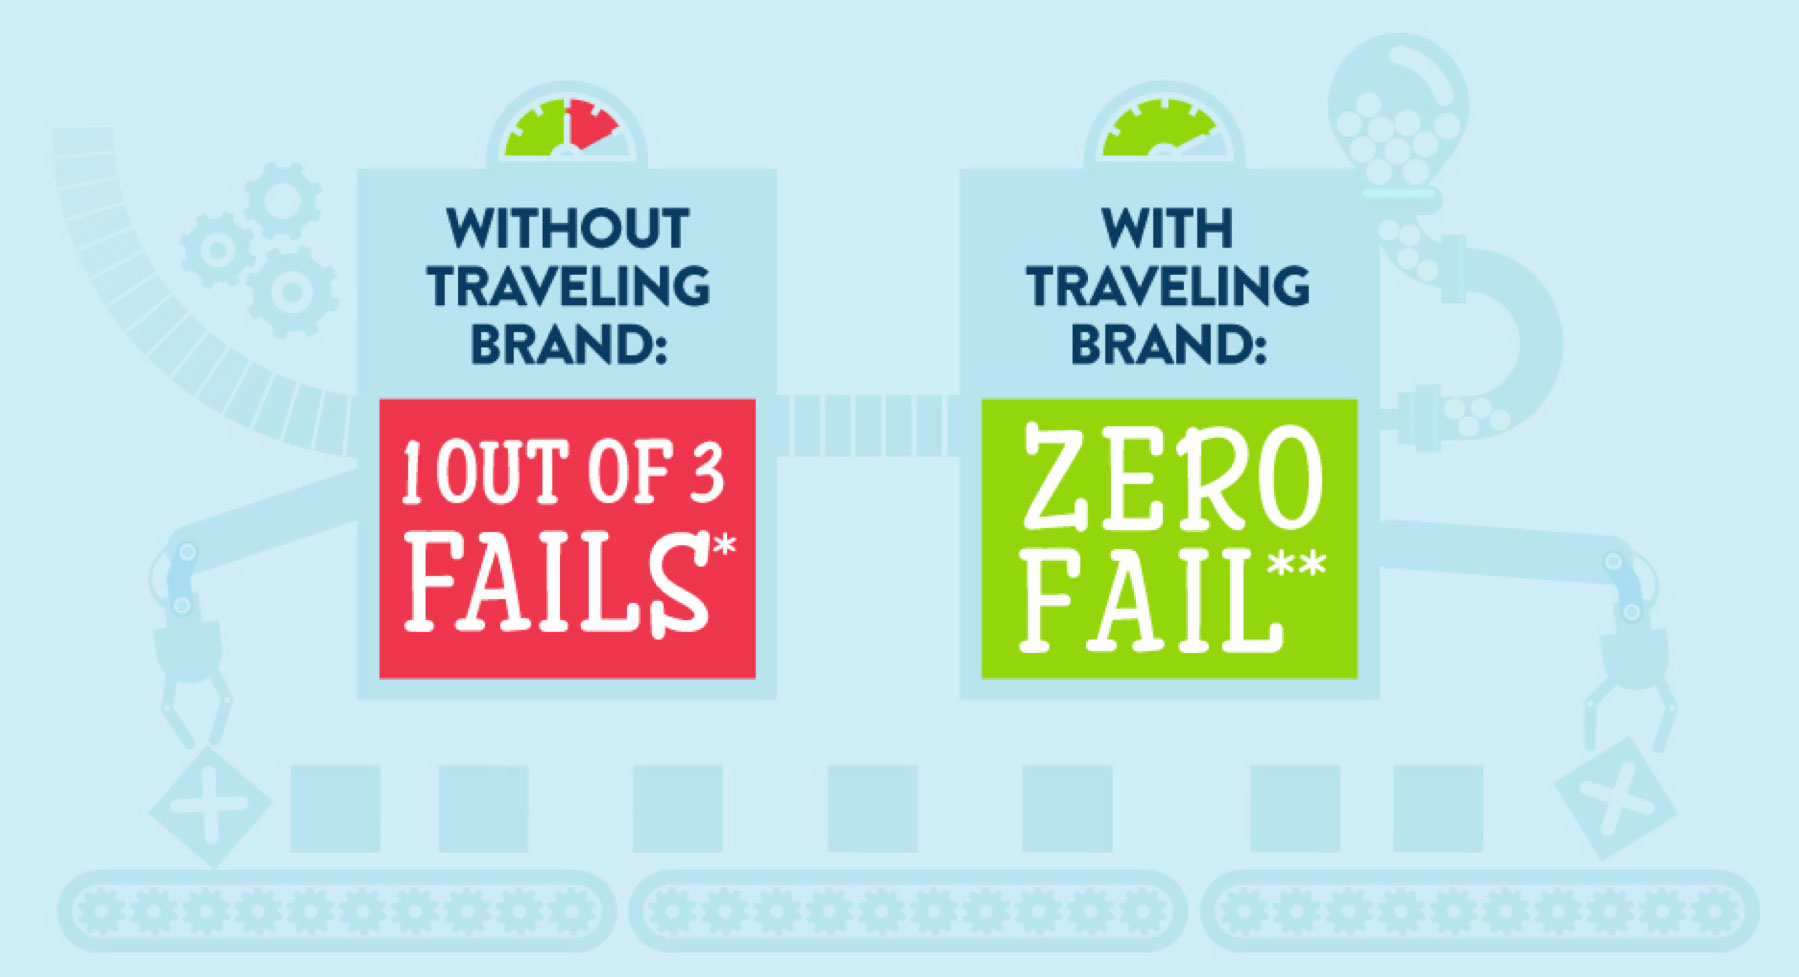 Without TravelingBrand 1 out of 3 fails. With TravelingBrand 0 fail